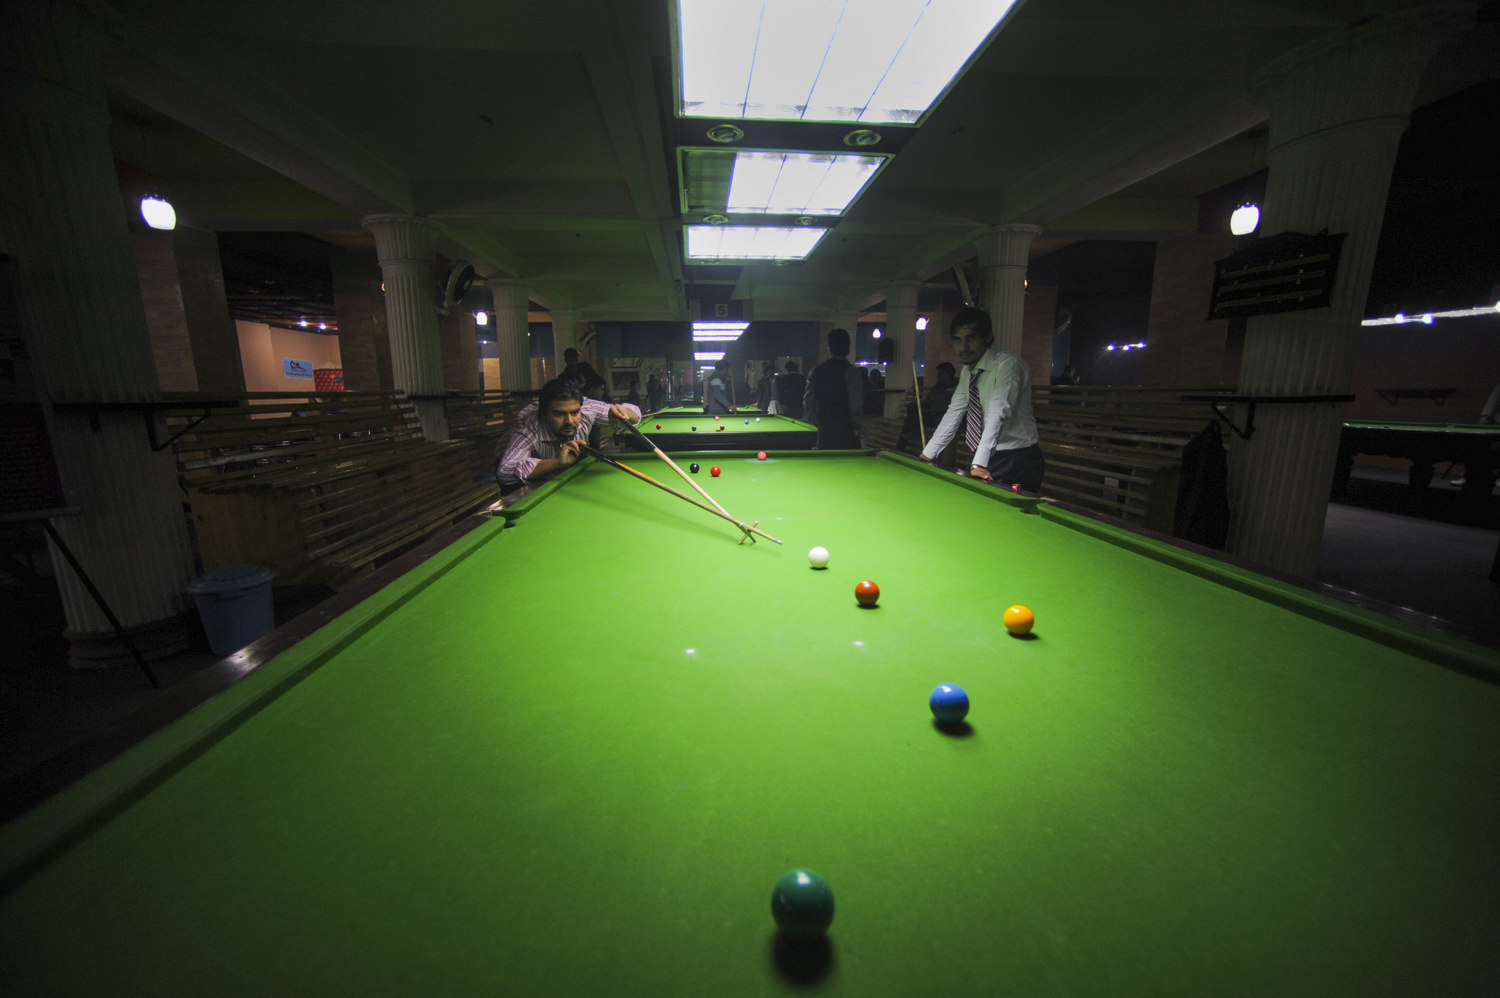 Yama Ismail plays Snooker at Target Game Zone in Haki Yqoob Square, Kabul Afghanistan. Snooker is a popular game for upper-class afghanis. The Snooker halls come alive after work hours are over also Tournaments are very popular.